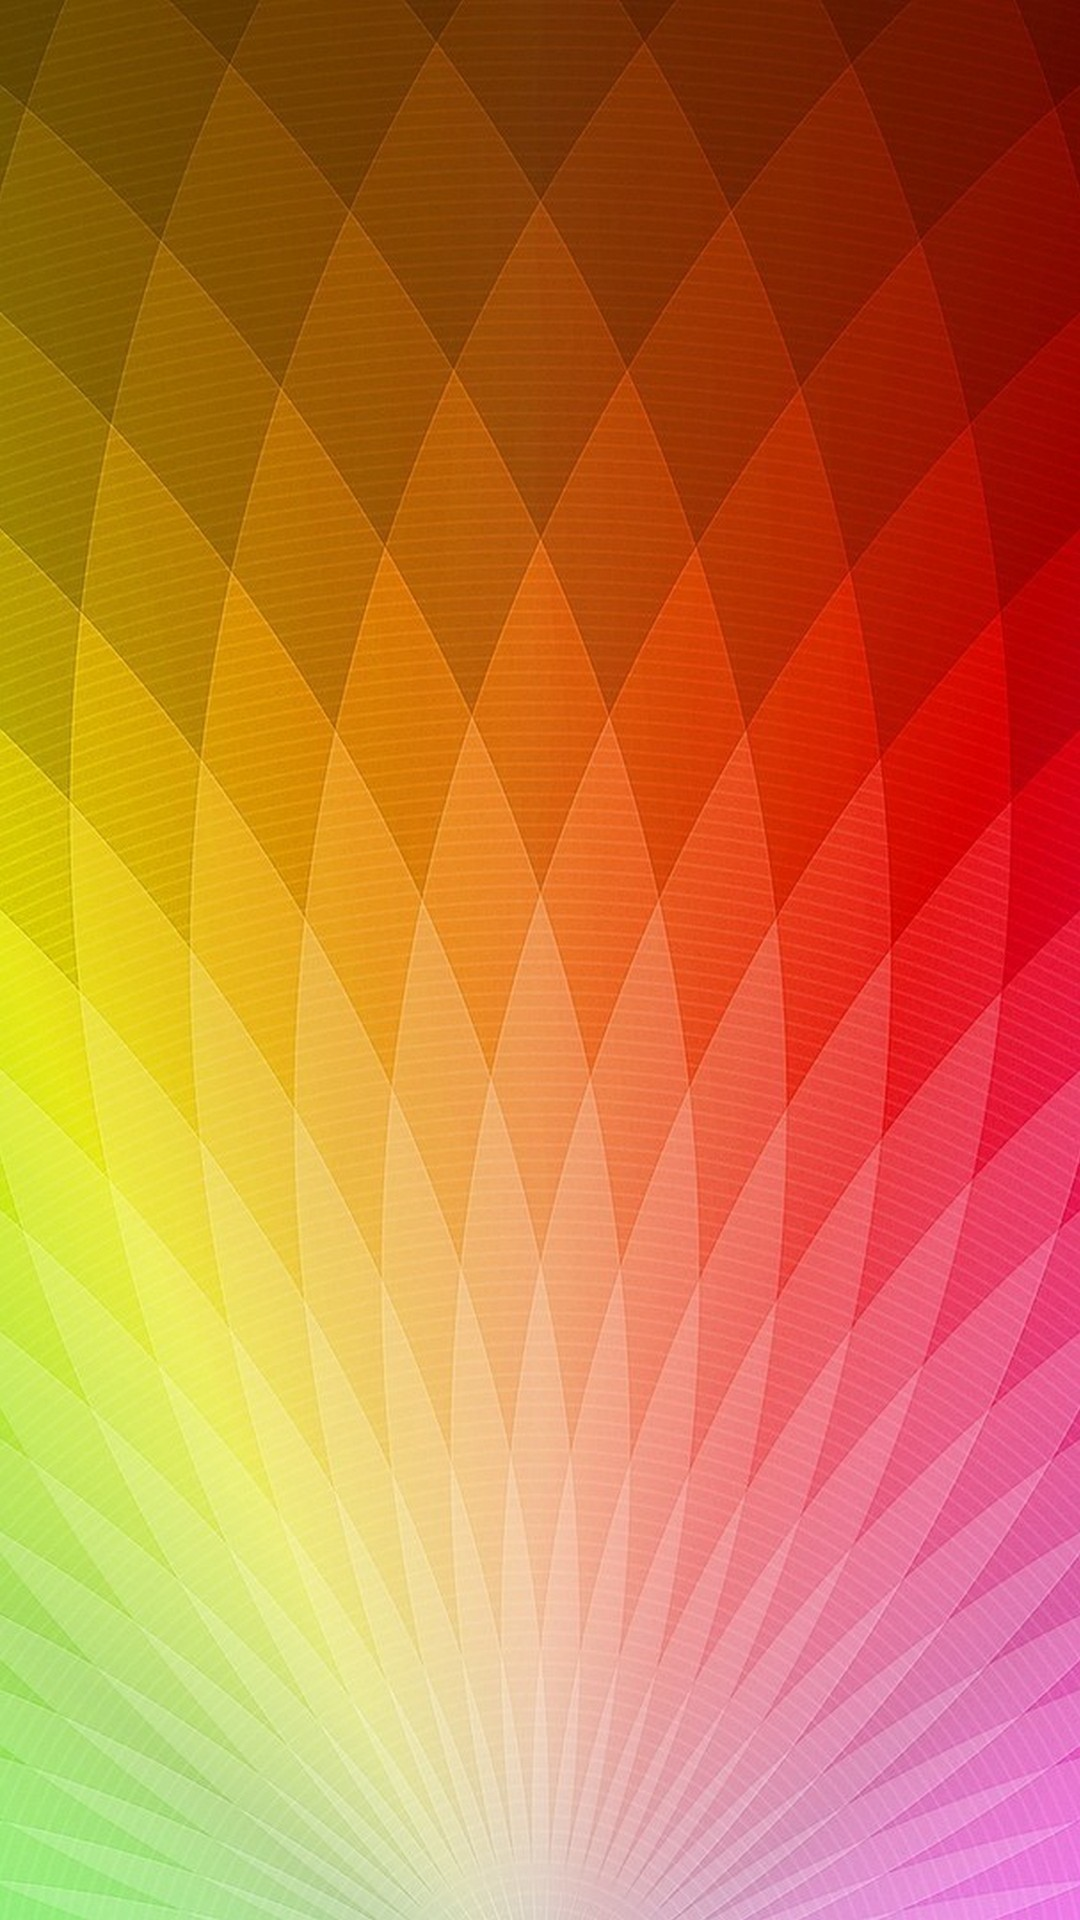 1080x1920 Rainbow Wallpaper iPhone HD with image resolution  pixel. You can  use this wallpaper as